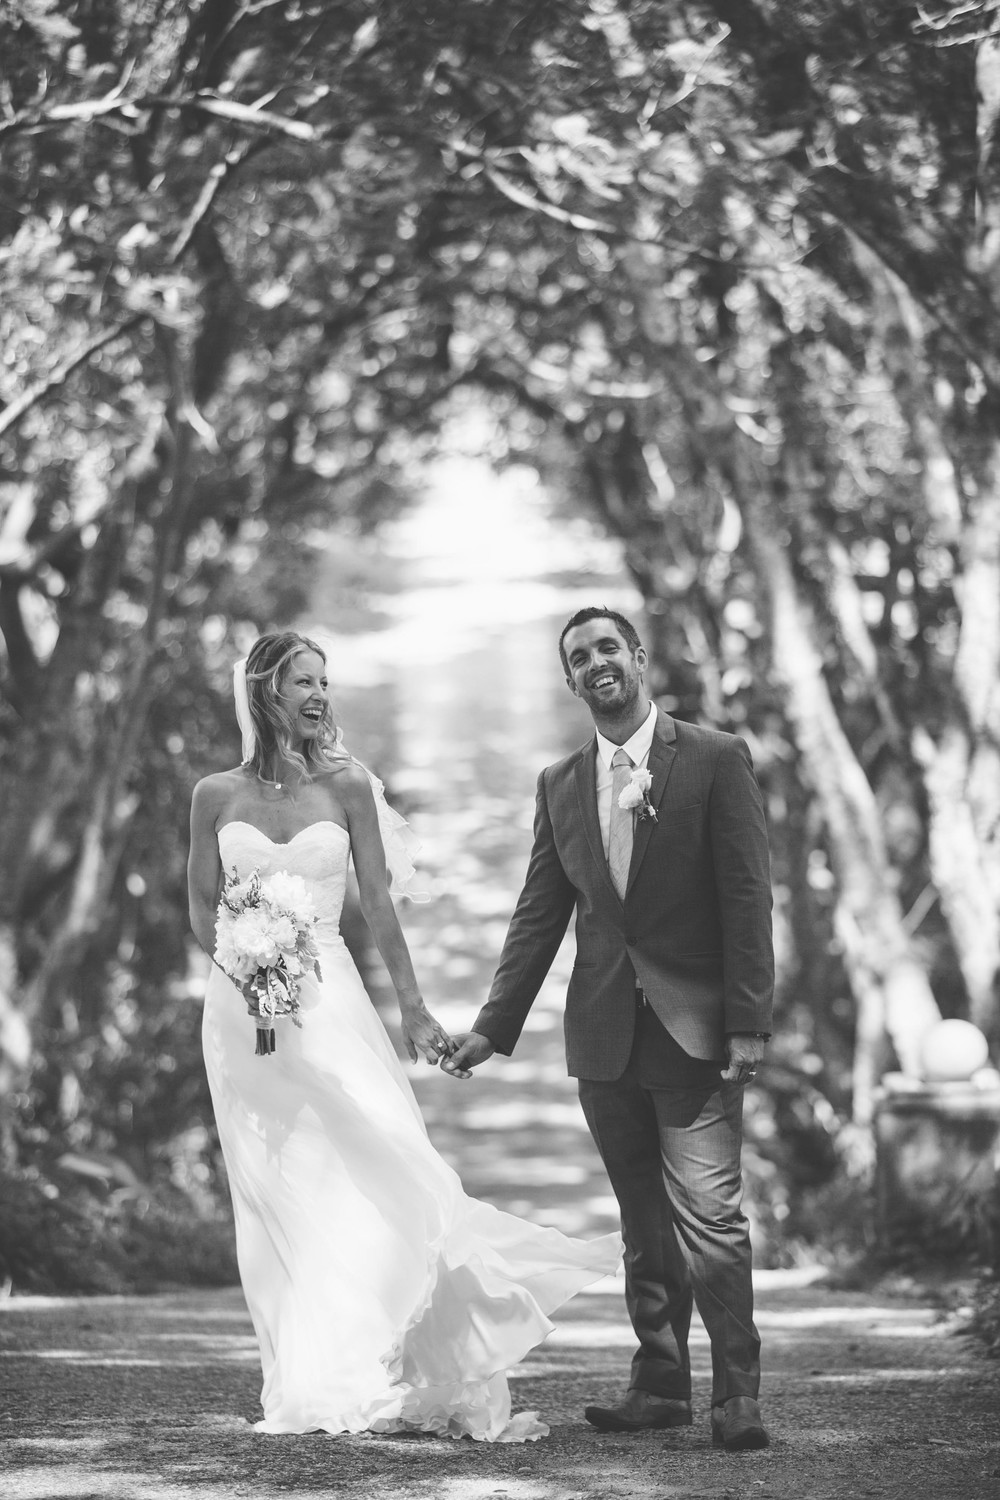 Debbie and Matt wedding, Deux Belettes, Byron Bay Hinterland by Milton Gan Photography 102.jpg